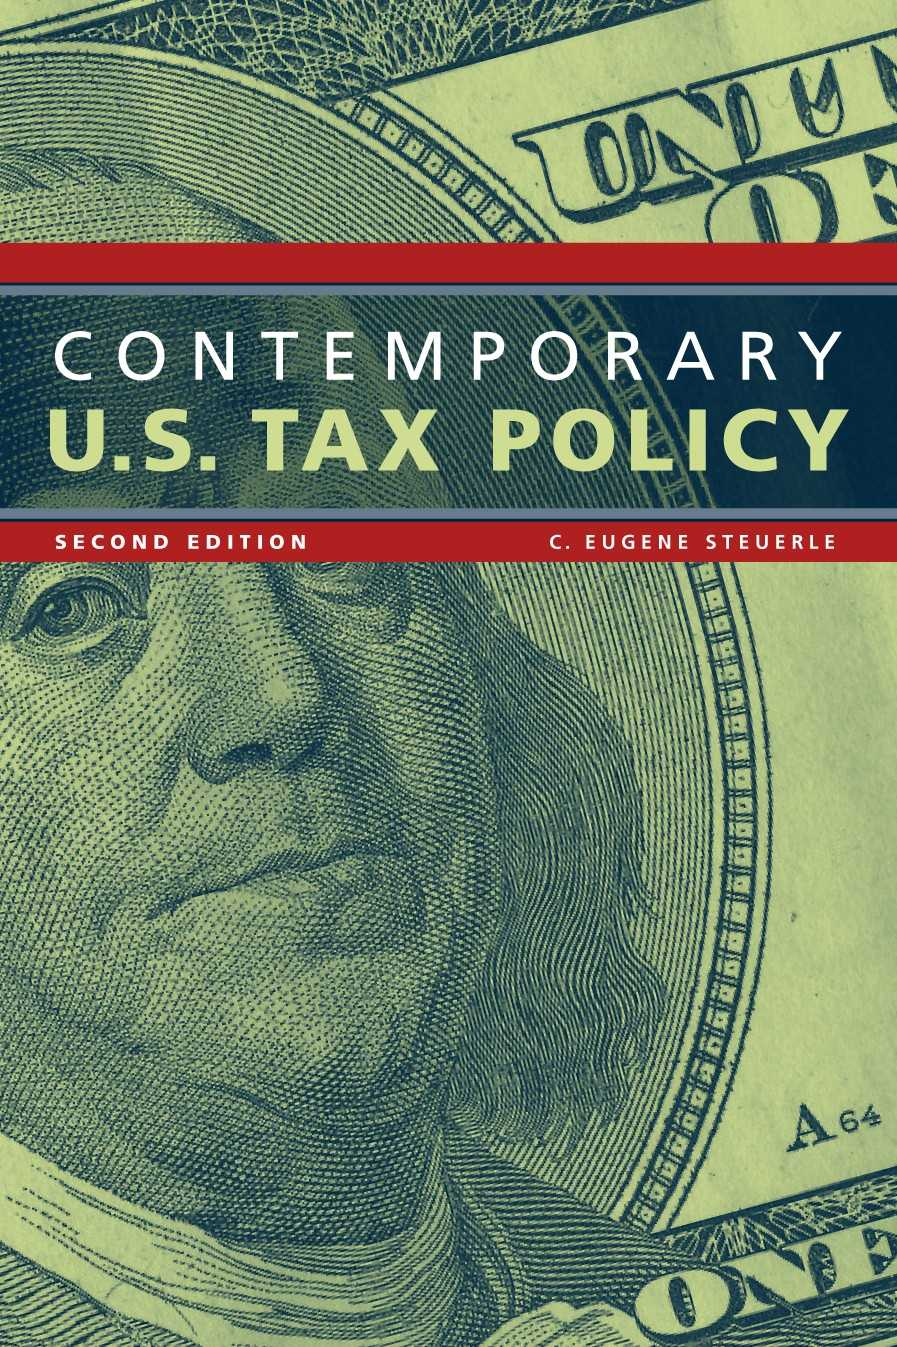 Contemporary U.S. Tax Policy By Steuerle, C. Eugene